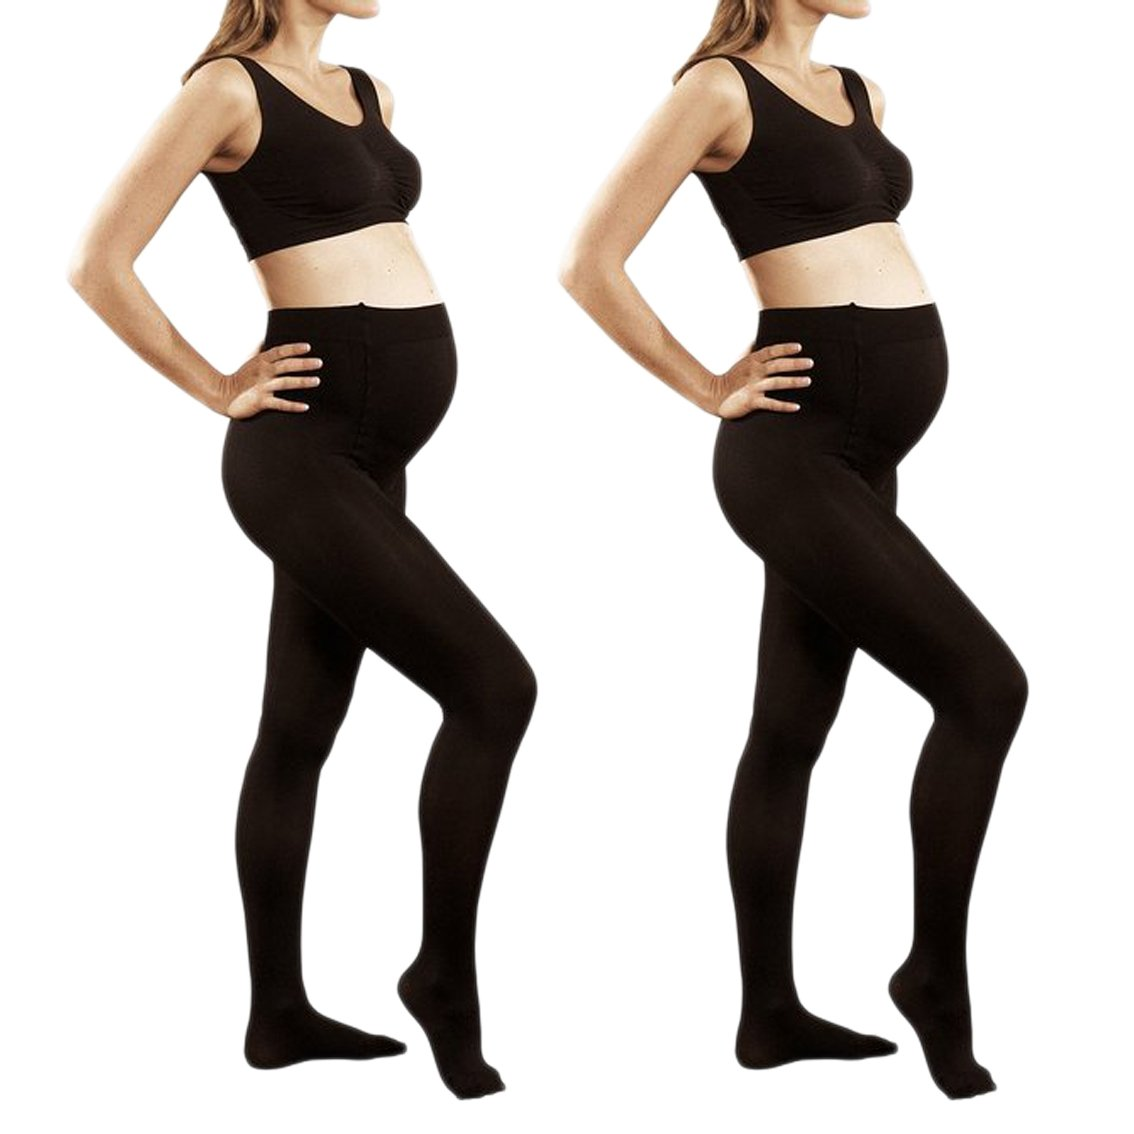 2 Pack of Mod & Tone Maternity Microfiber Opaque Tights, Wide Waist Band (L/XL, Black)